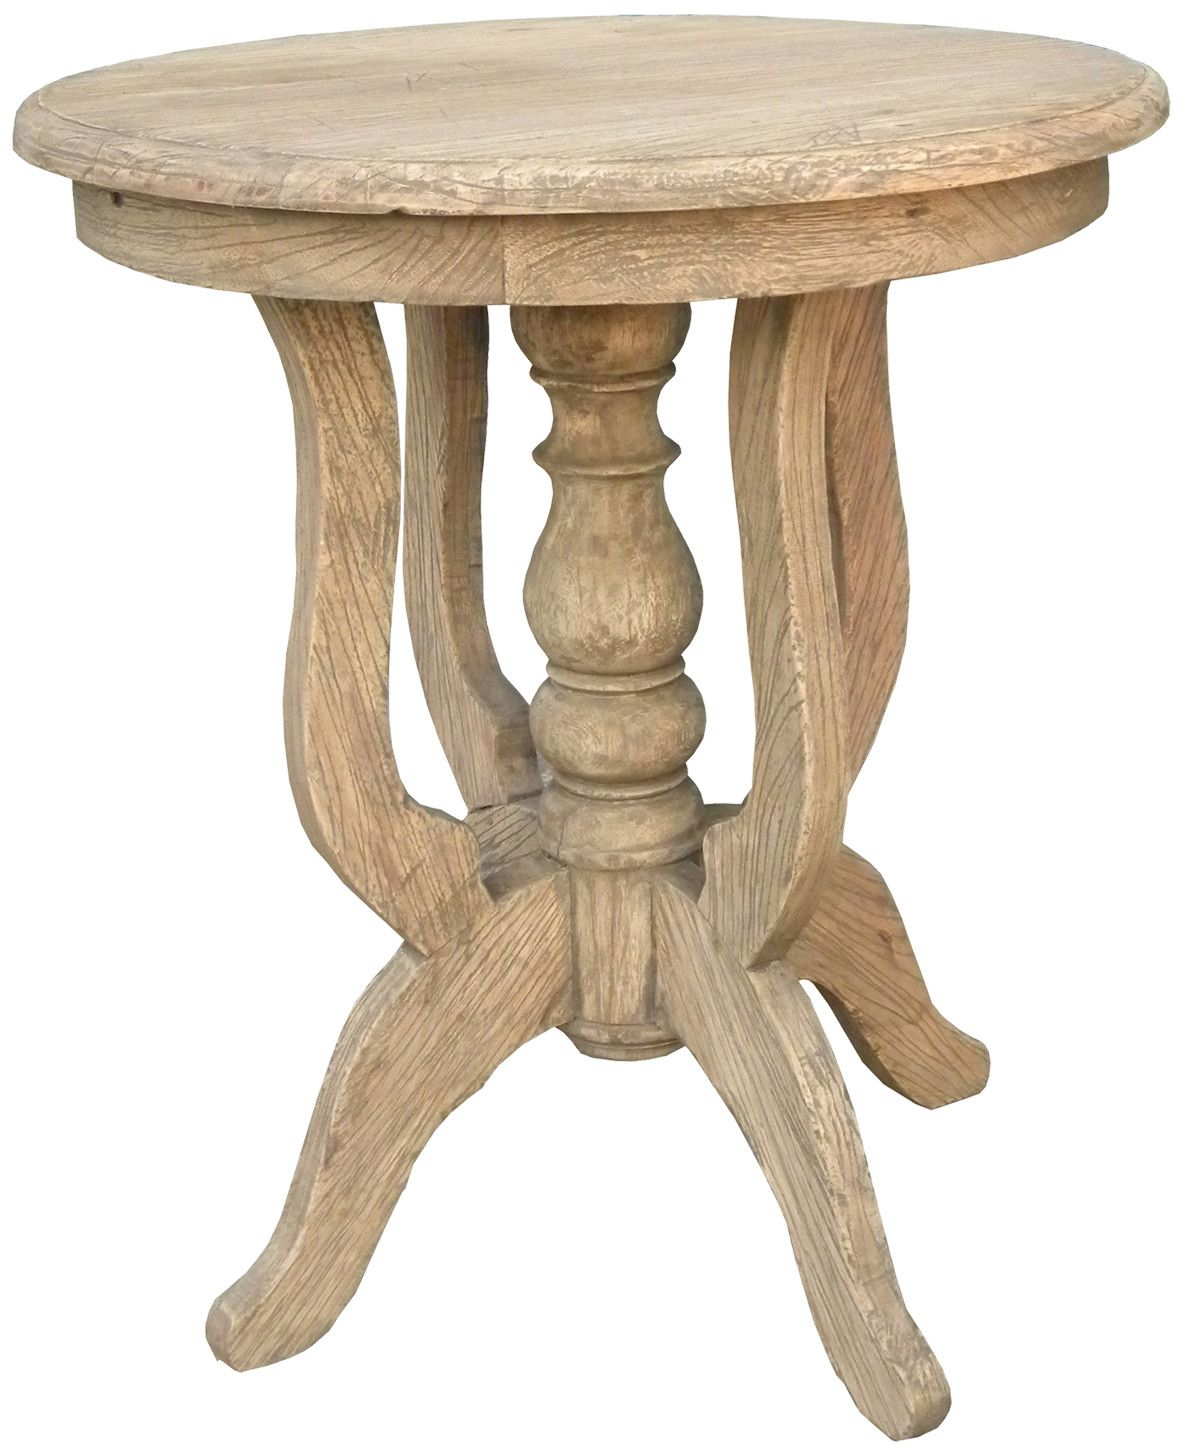 end table julie tables furniture country cottage style leg design queen anne legs shape round old top finish natural base mate stickley craftsman fire pit and chairs pool side